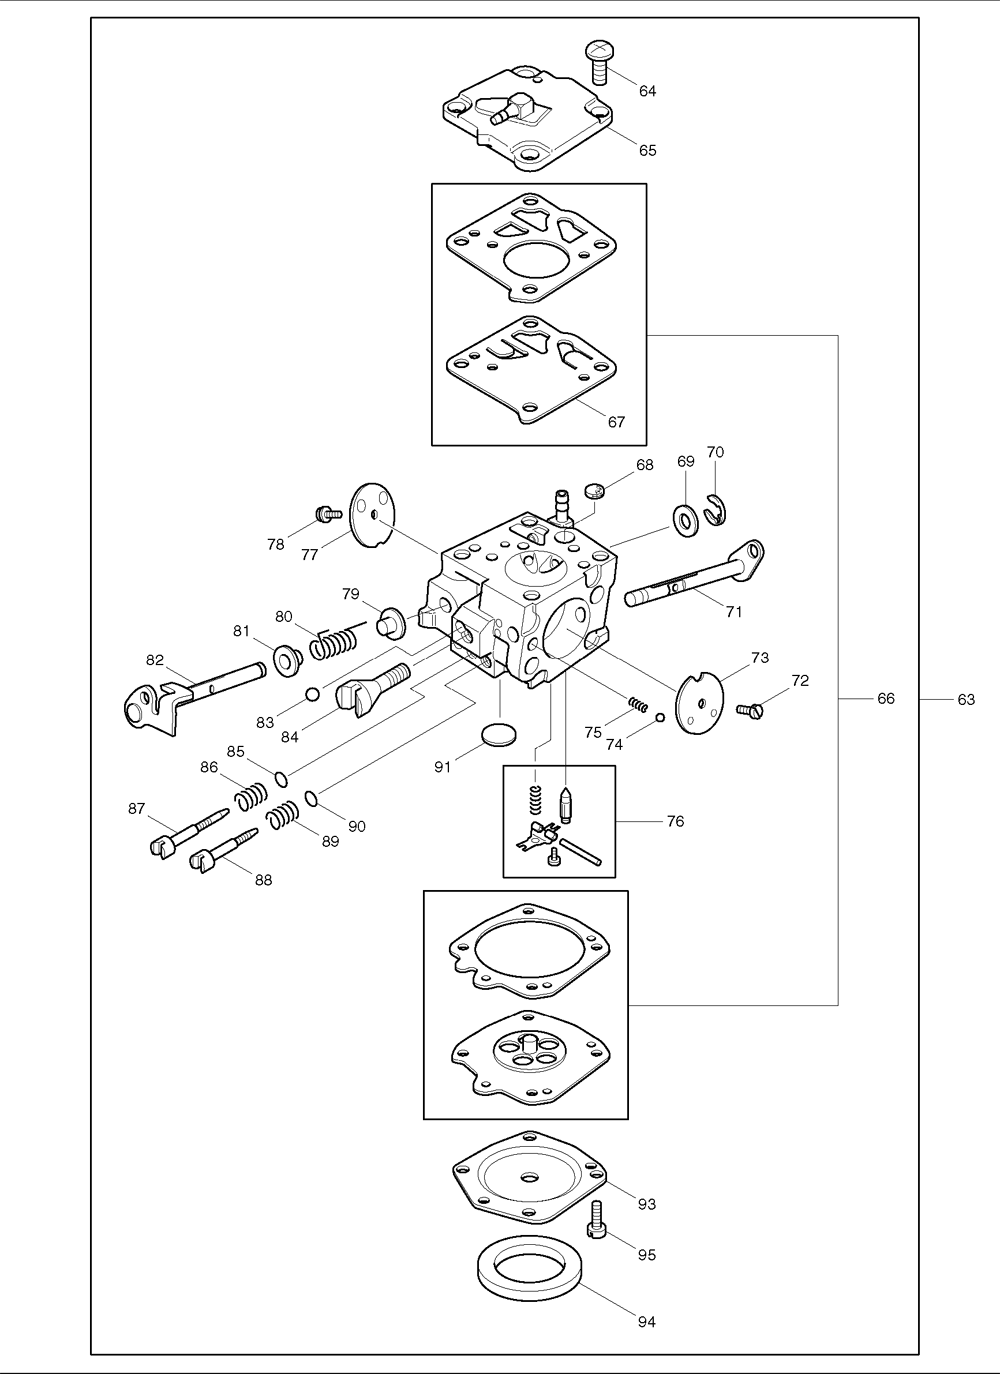 Makita-DPC7300-580-PBBreak Down